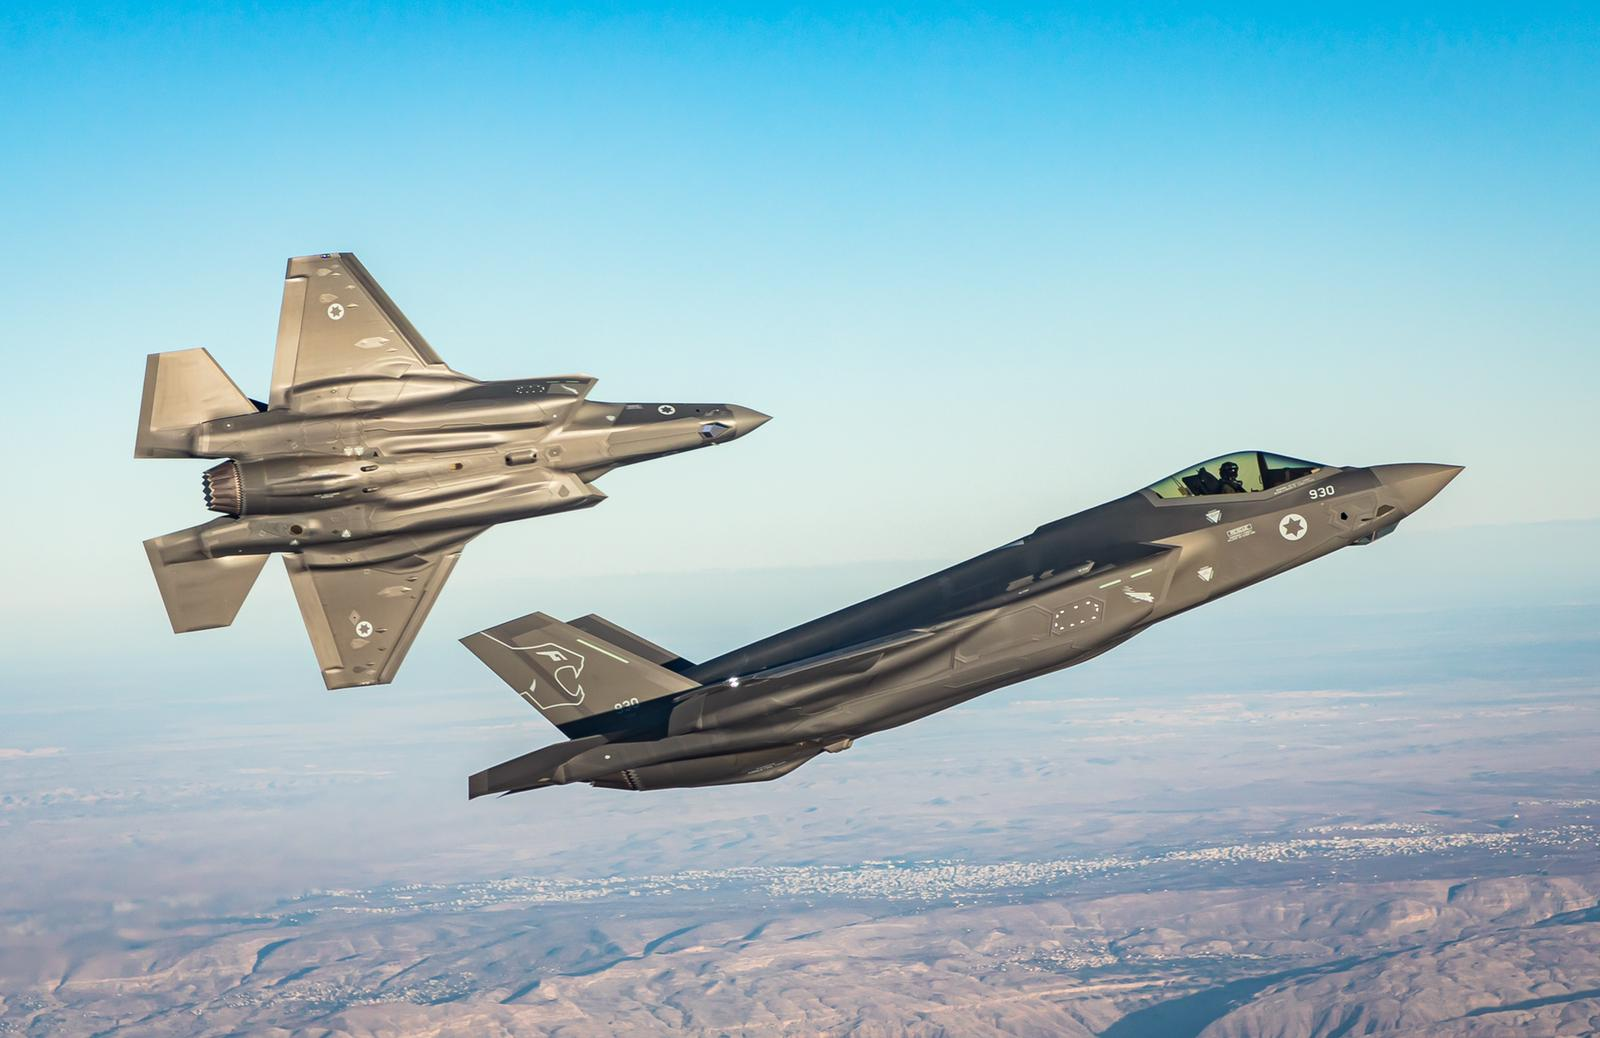 Israel Air Force inaugurates its second F-35 squadron | The Times ...